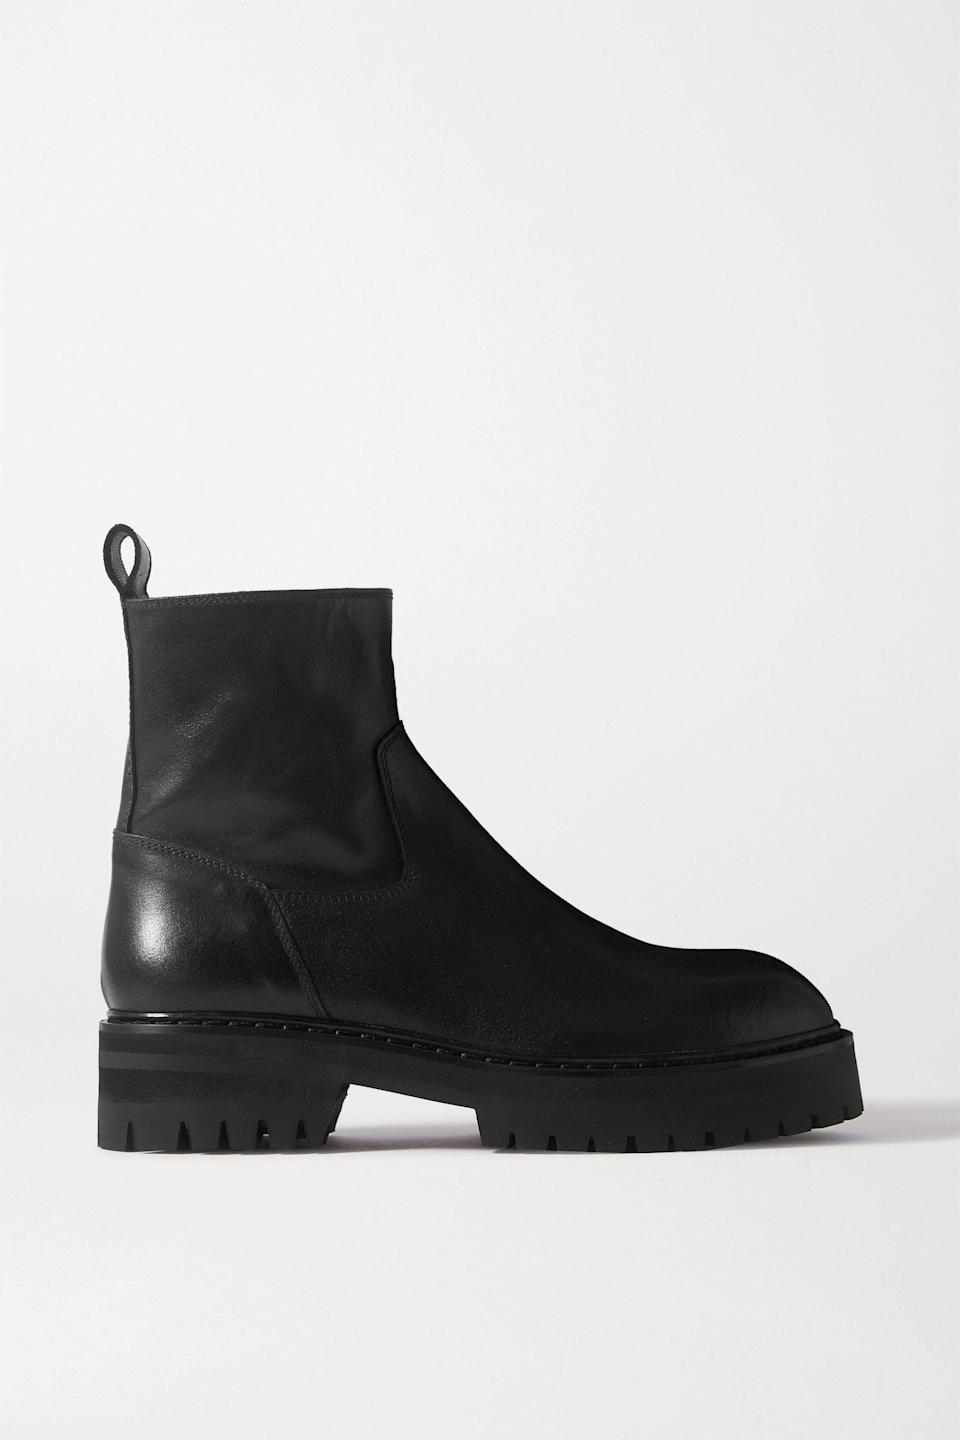 """<p><strong>Ann Demeulemeester </strong></p><p>net-a-porter.com</p><p><strong>$1005.00</strong></p><p><a href=""""https://go.redirectingat.com?id=74968X1596630&url=https%3A%2F%2Fwww.net-a-porter.com%2Fen-us%2Fshop%2Fproduct%2Fann-demeulemeester%2Fshoes%2Fankle%2Fleather-ankle-boots%2F8008779905612307&sref=https%3A%2F%2Fwww.townandcountrymag.com%2Fstyle%2Ffashion-trends%2Fg28225508%2Ffall-boots%2F"""" rel=""""nofollow noopener"""" target=""""_blank"""" data-ylk=""""slk:Shop Now"""" class=""""link rapid-noclick-resp"""">Shop Now</a></p><p>Riff off of the lug sole trend with a pair that has a distinctly borrowed from the boys aesthetic—perfect for adding contrast to a feminine dress. </p>"""